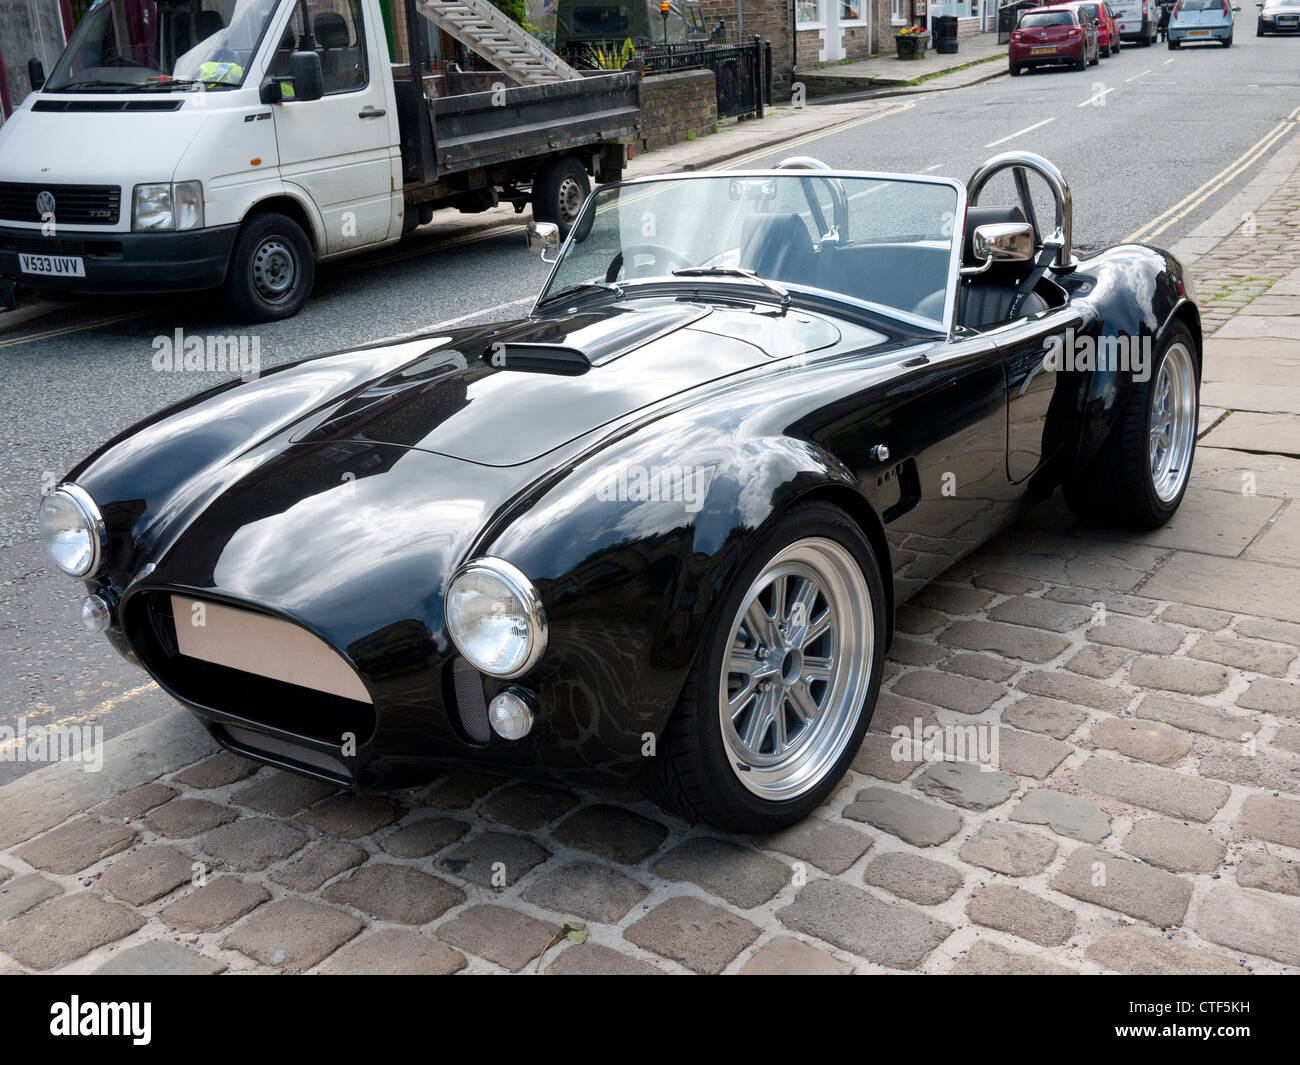 Ac Cobra Replica Kit Car Uk Stock Photo 49506229 Alamy